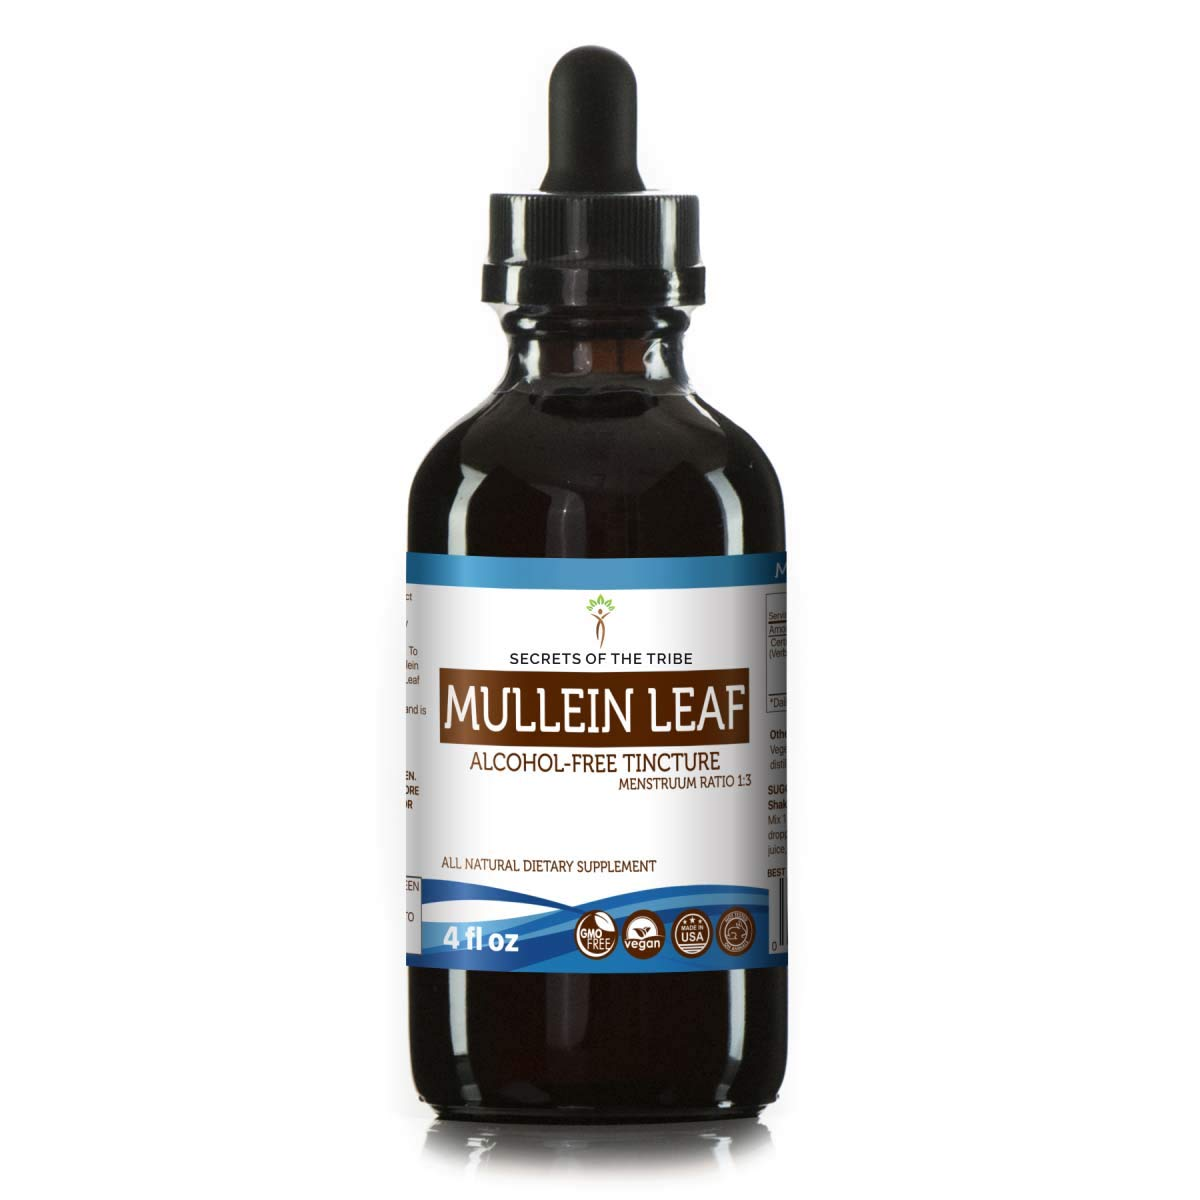 Mullein Leaf Alcohol-Free Liquid Extract, Organic Mullein Verbascum Densiflorum Tincture Supplement 4 FL OZ